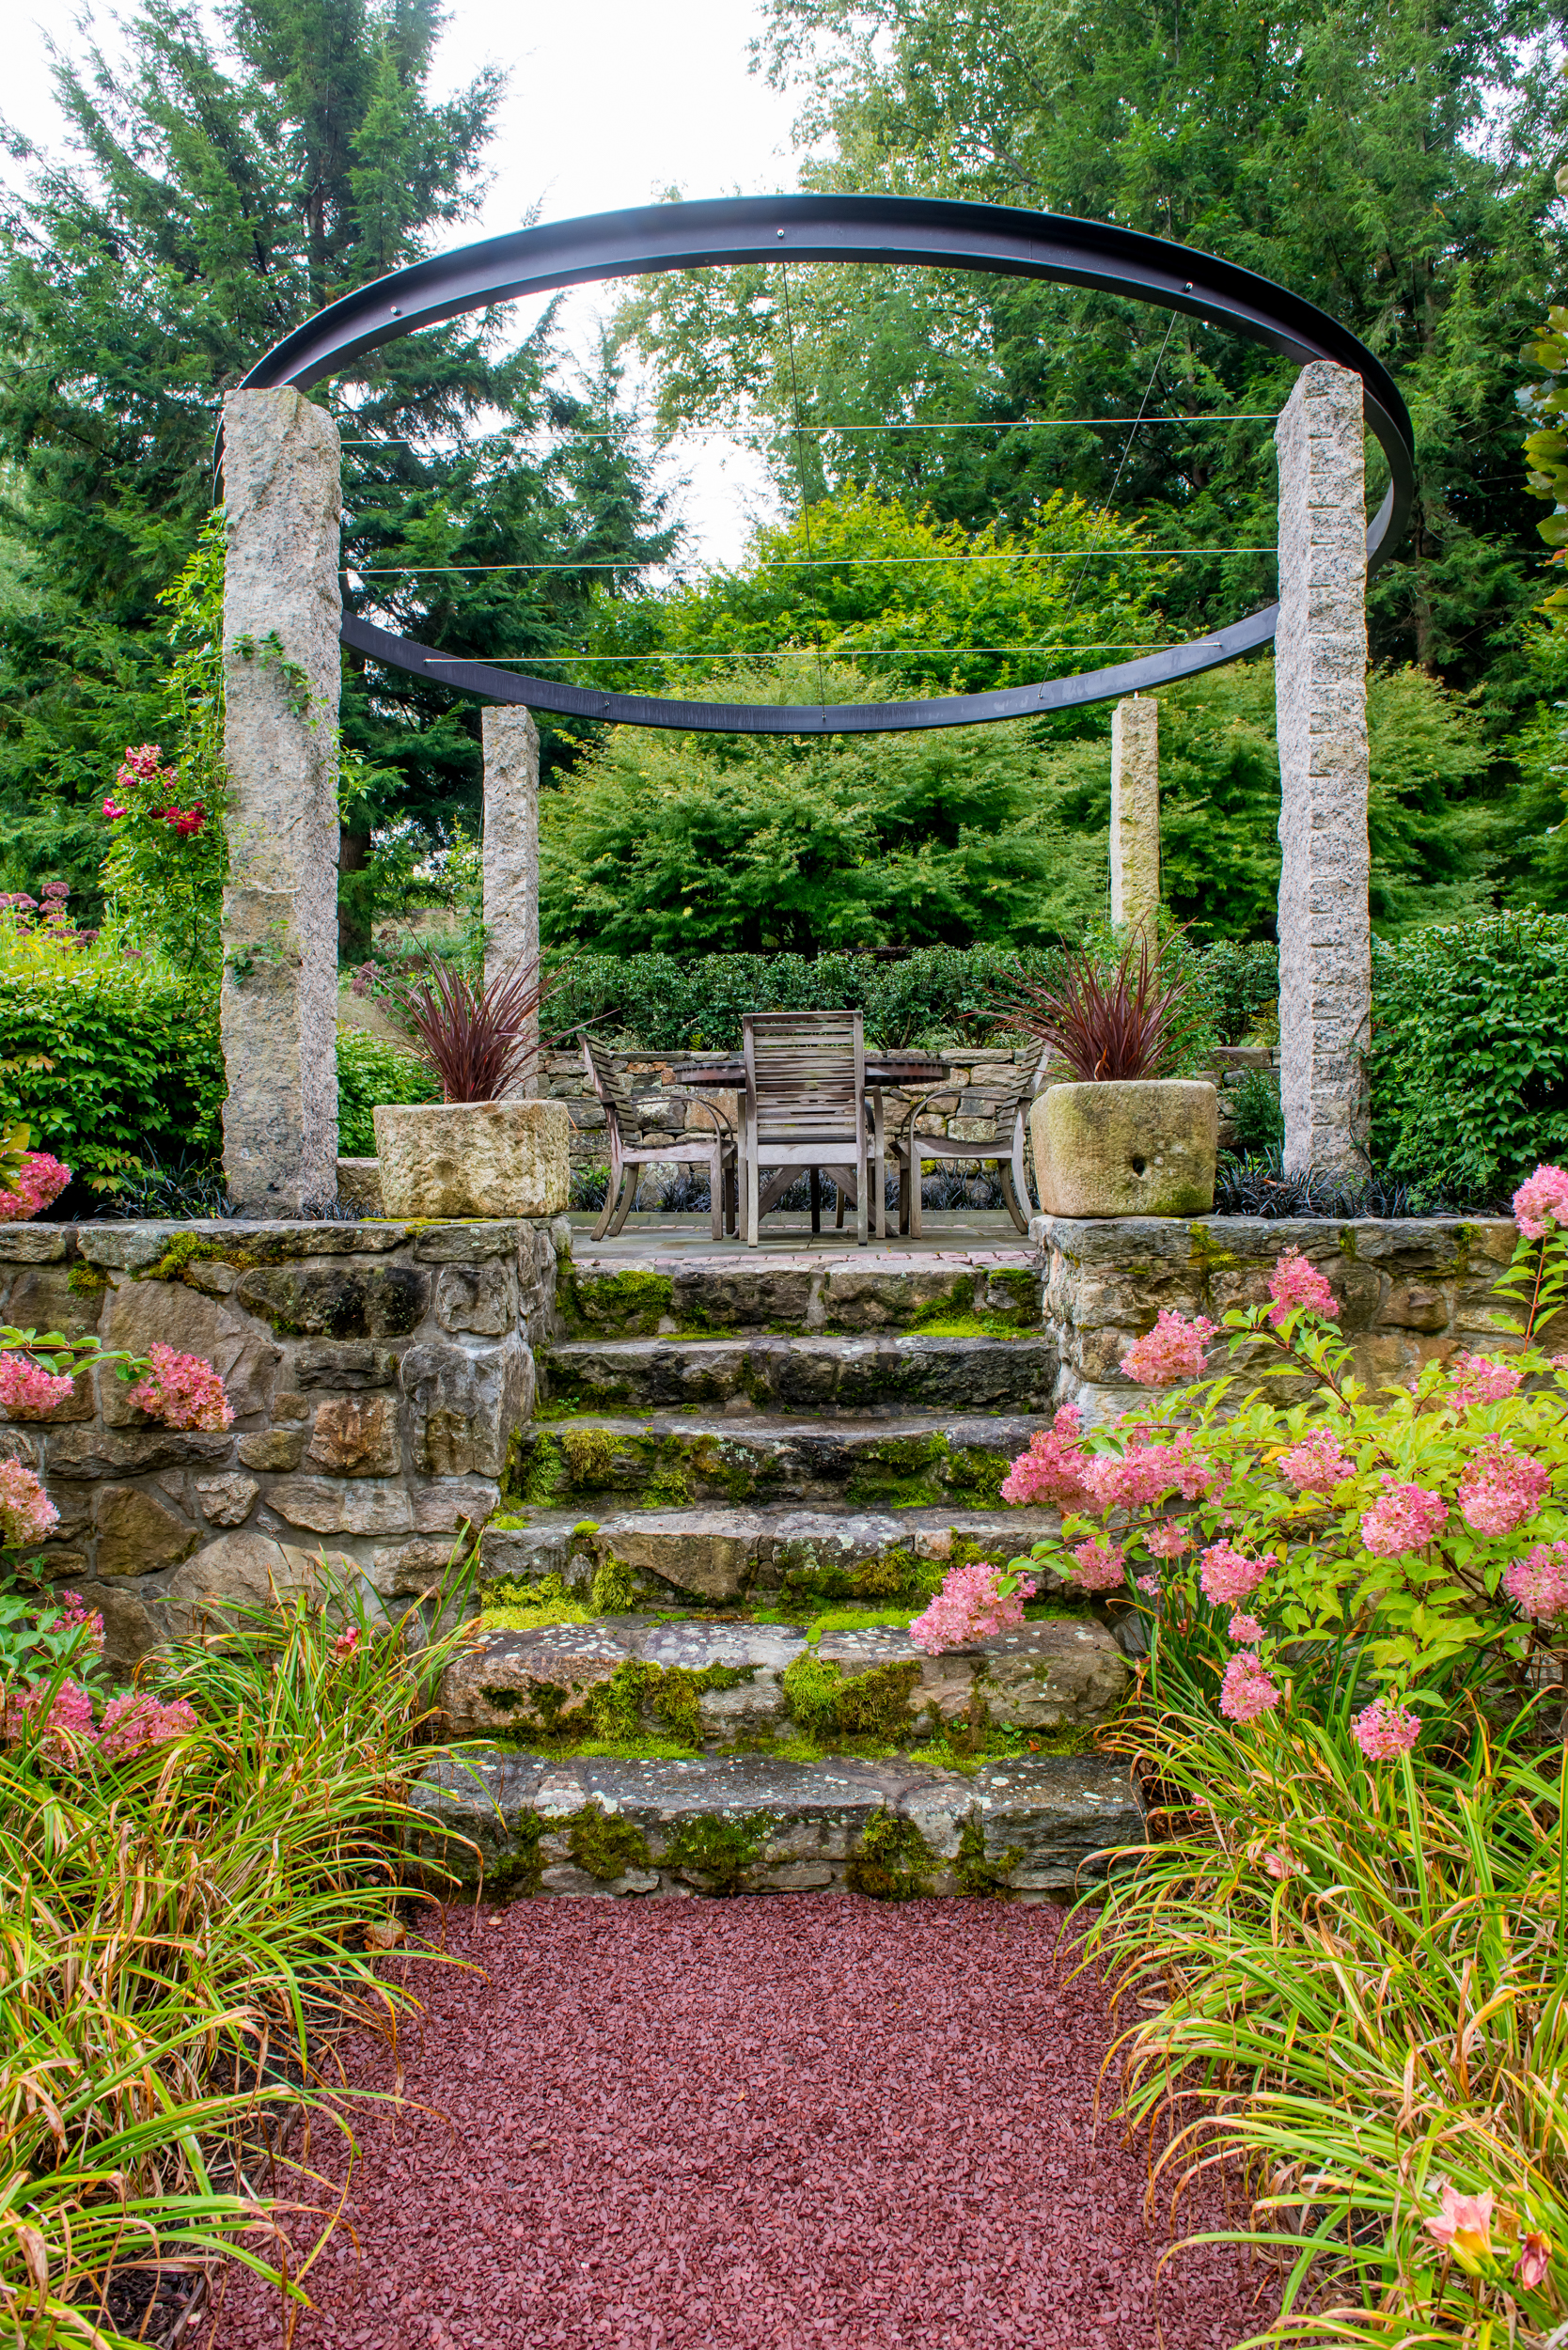 Steps leading to stone patio with circular steel arbor